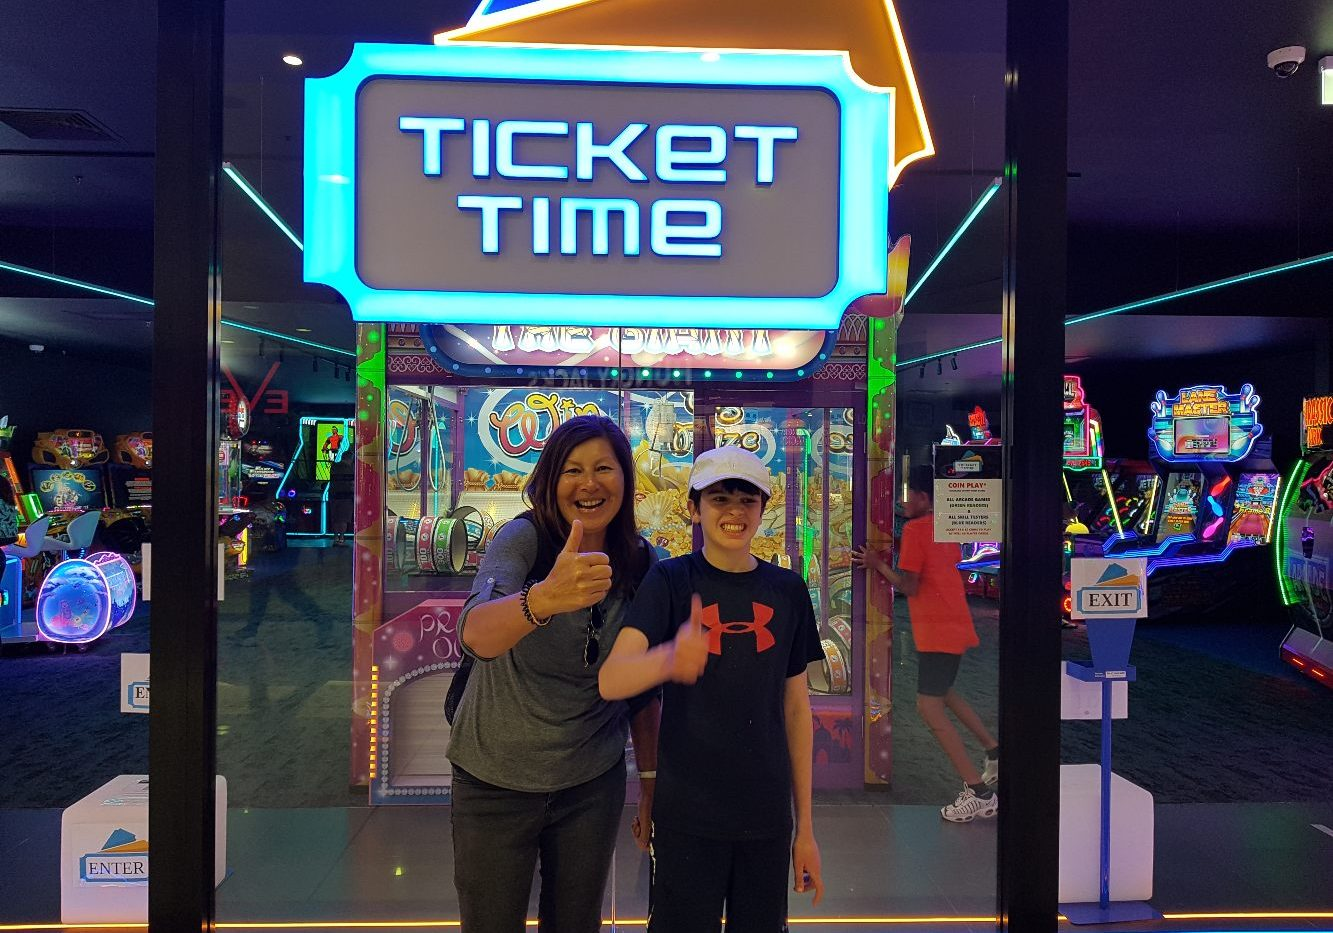 bec and boy having fun and exercising at ticket time